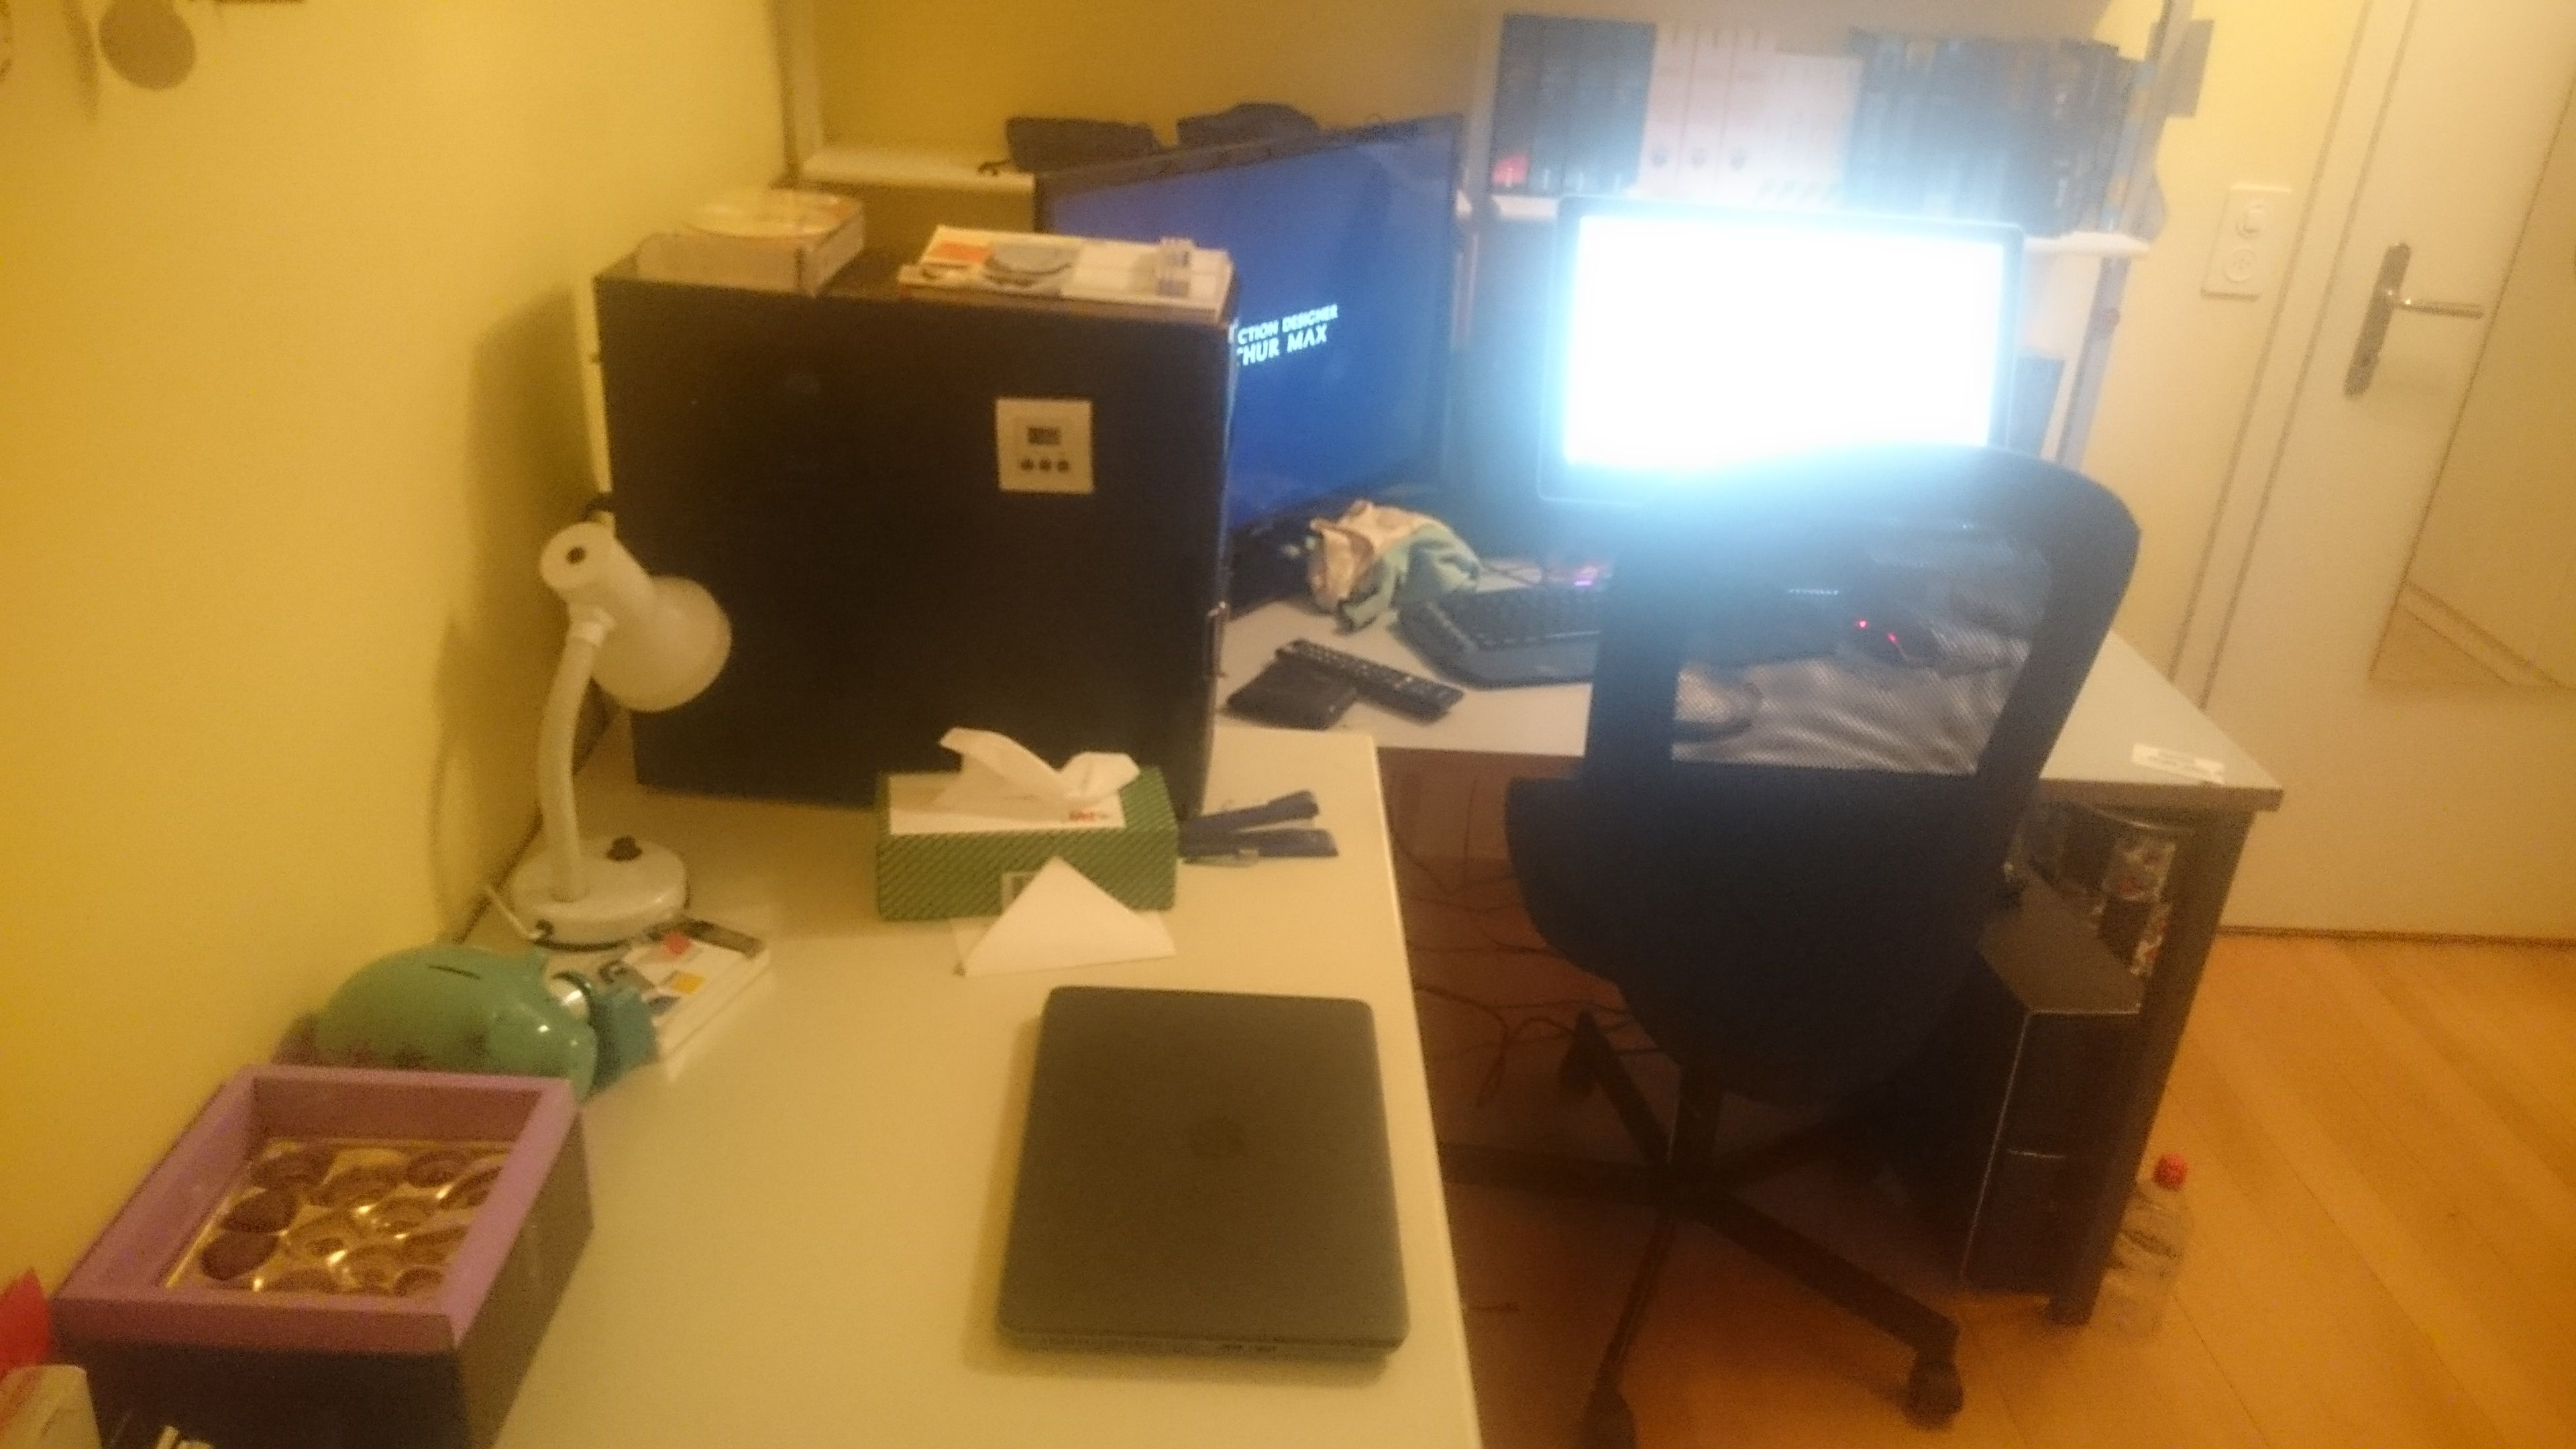 The story from how I went from r/shittybattlestations to r/battlestations